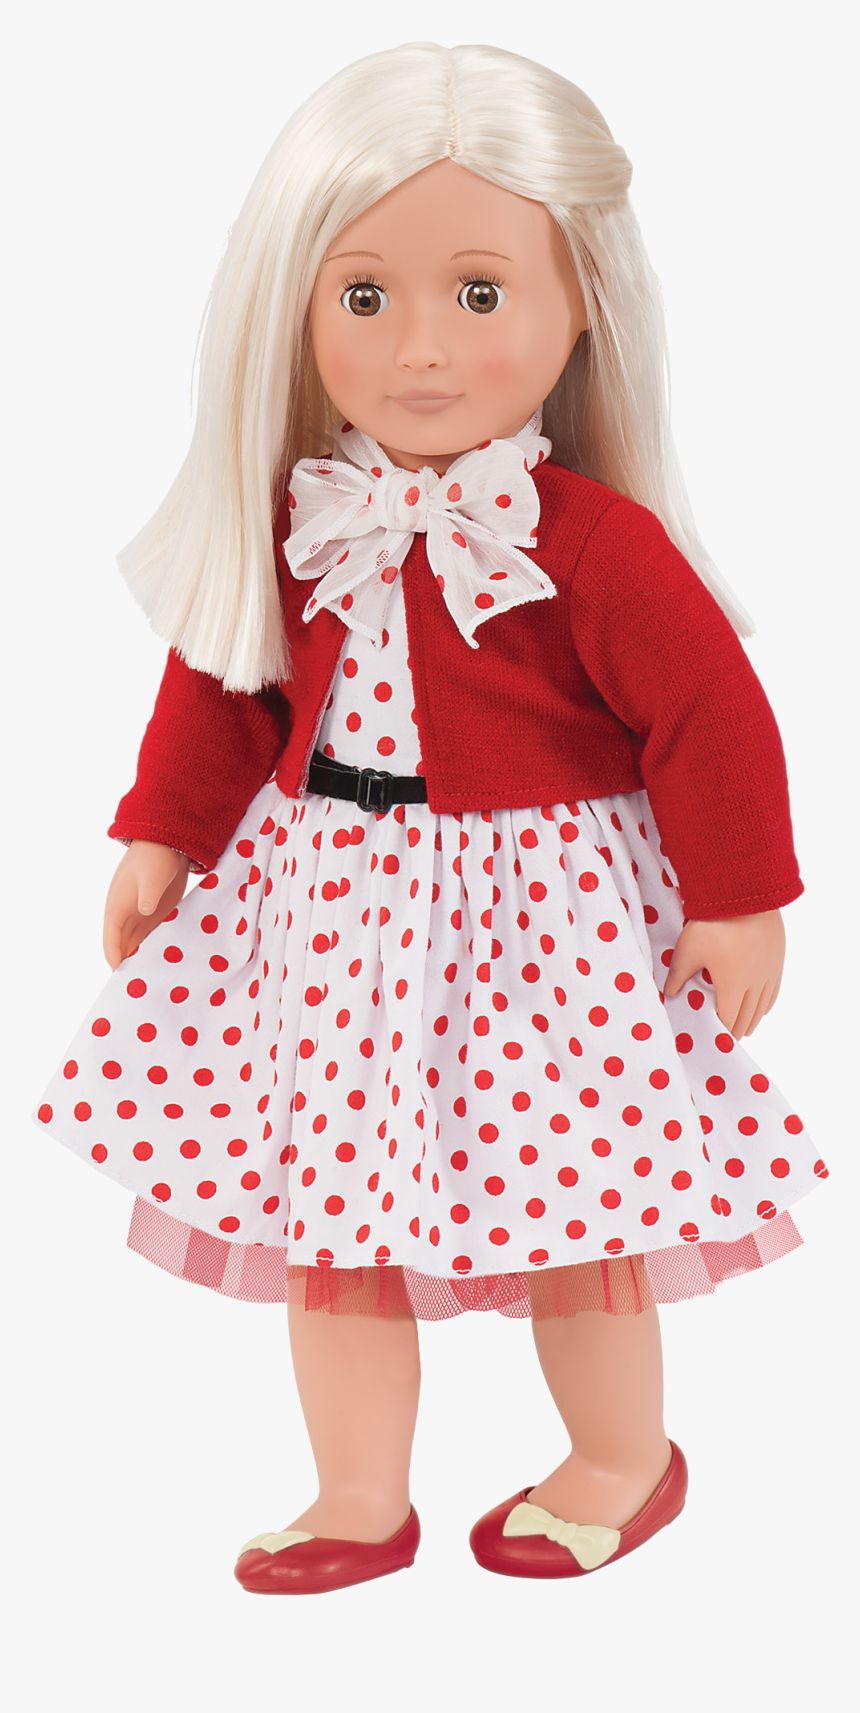 Rose Retro 18-inch Doll With Polka Dot Dress, HD Png Download, Free Download